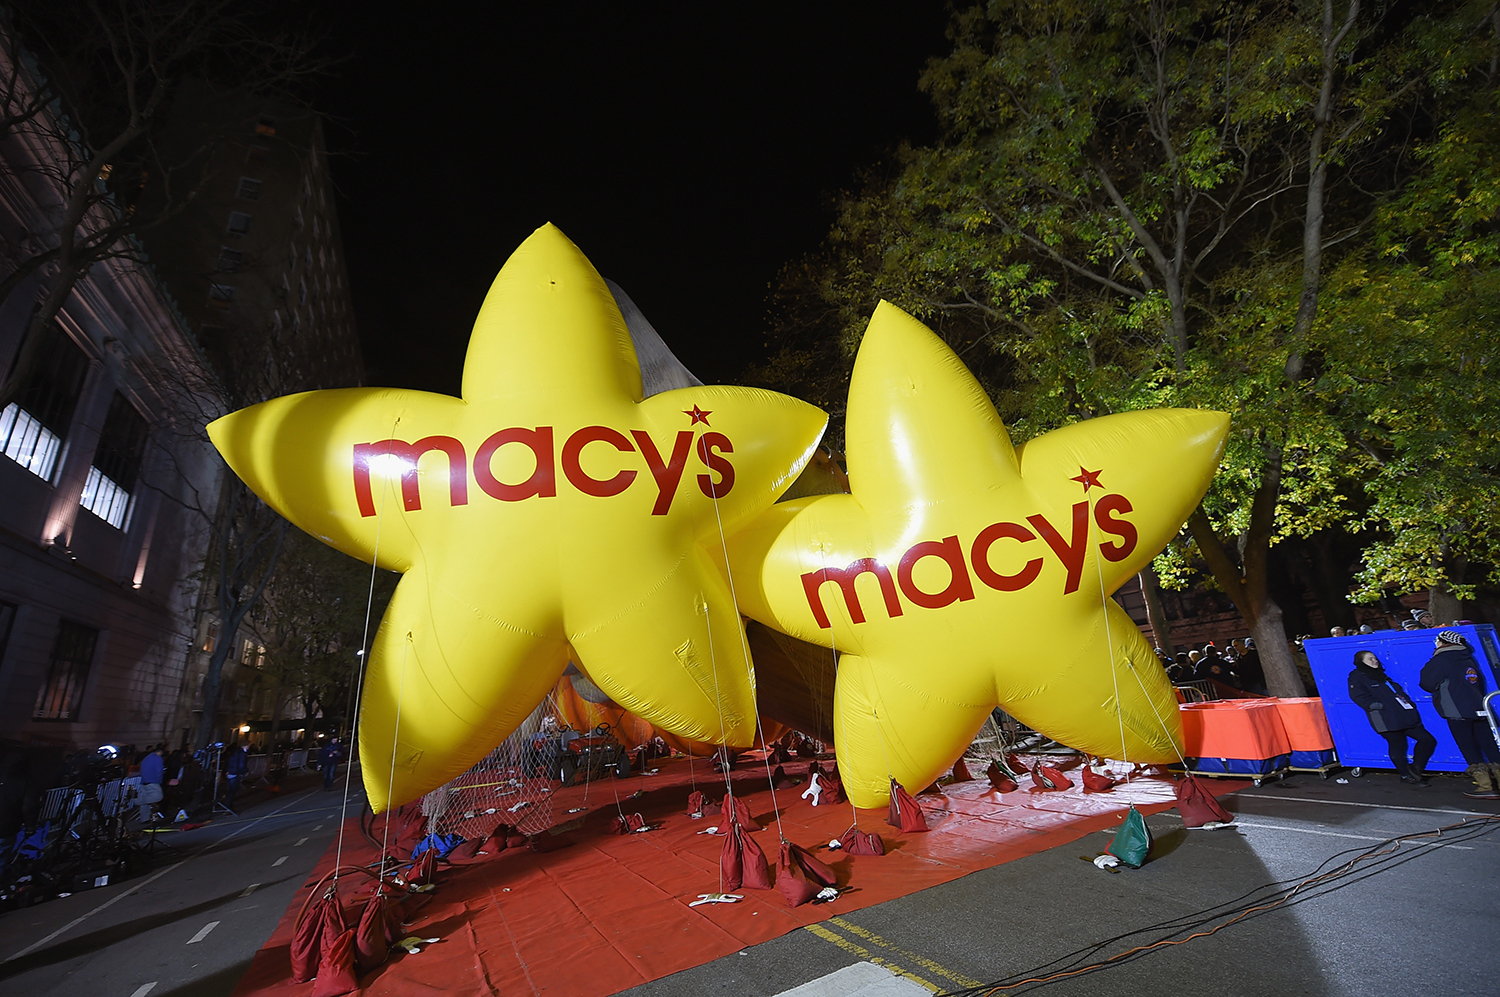 NEW YORK, NY - NOVEMBER 25: General view of the Macy's Star balloons during the 89th Annual Macy's Thanksgiving Day Inflation Eve on November 25, 2015 in New York City. Michael Loccisano/Getty Images/AFP